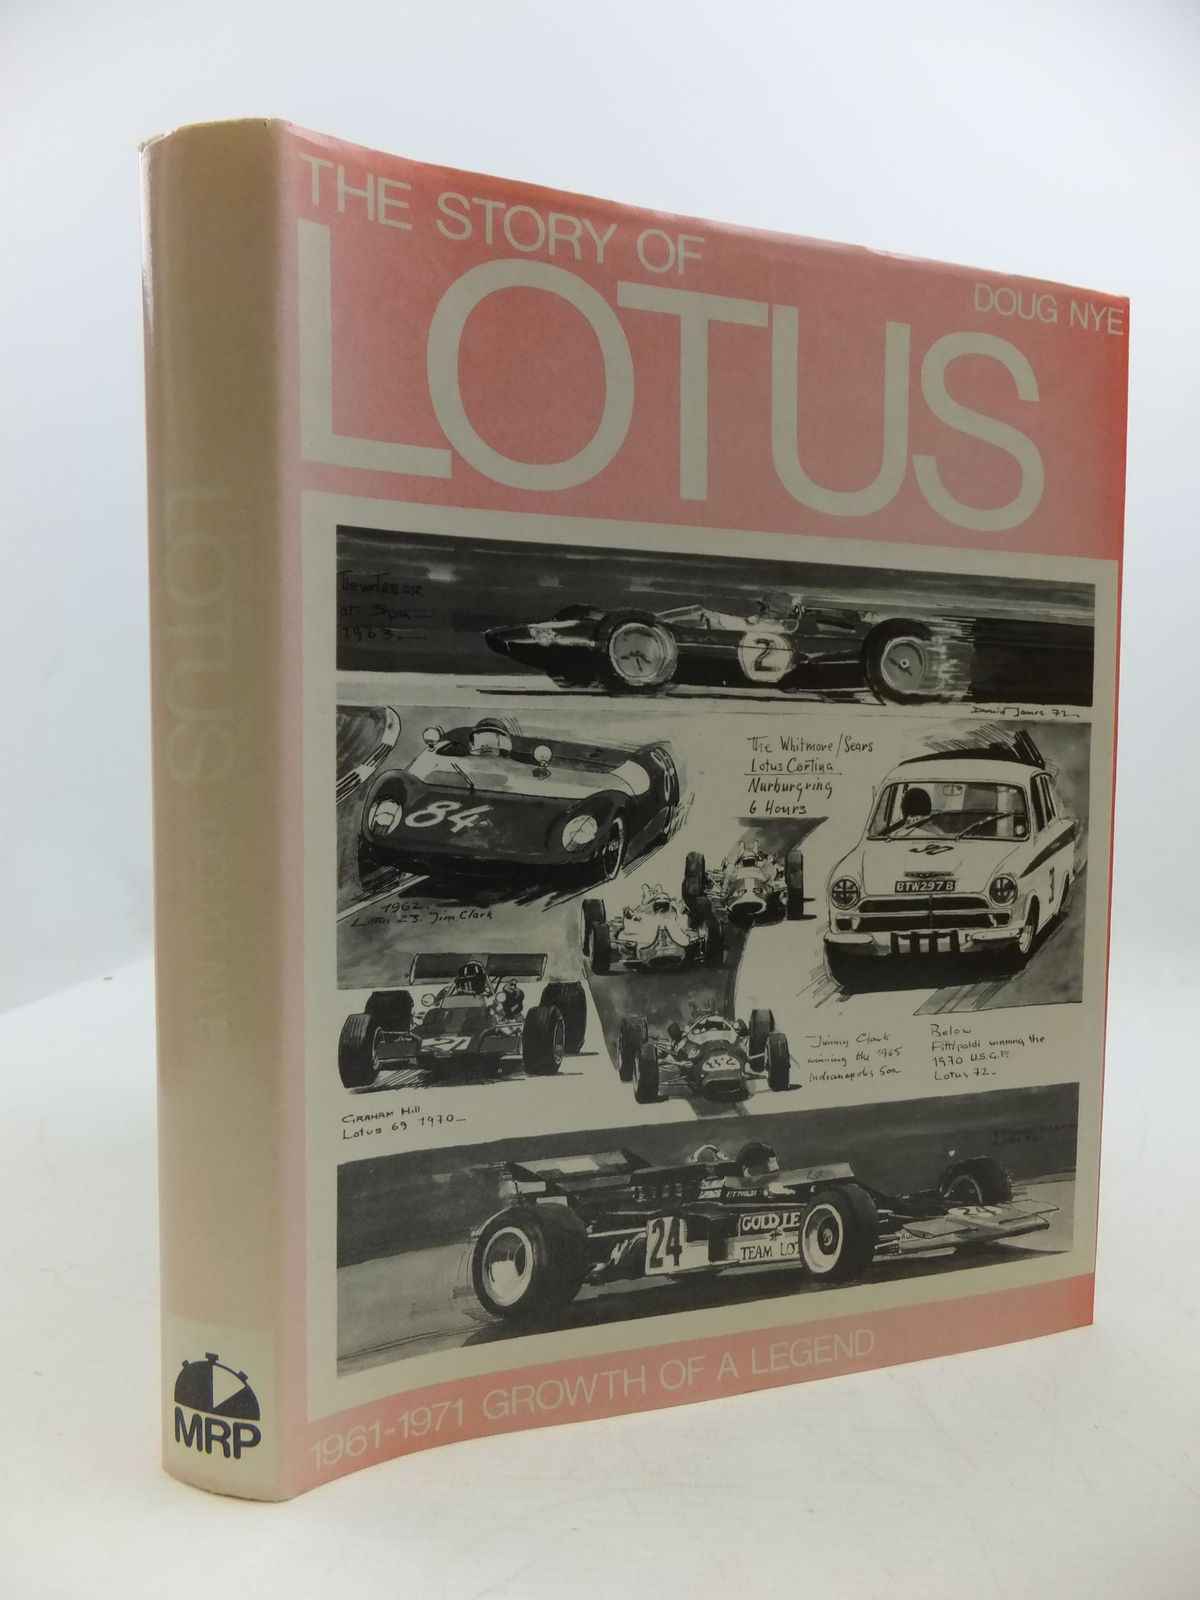 Photo of THE STORY OF LOTUS 1961-1971 GROWTH OF A LEGEND written by Nye, Doug published by Motor Racing Publications Ltd. (STOCK CODE: 1708338)  for sale by Stella & Rose's Books